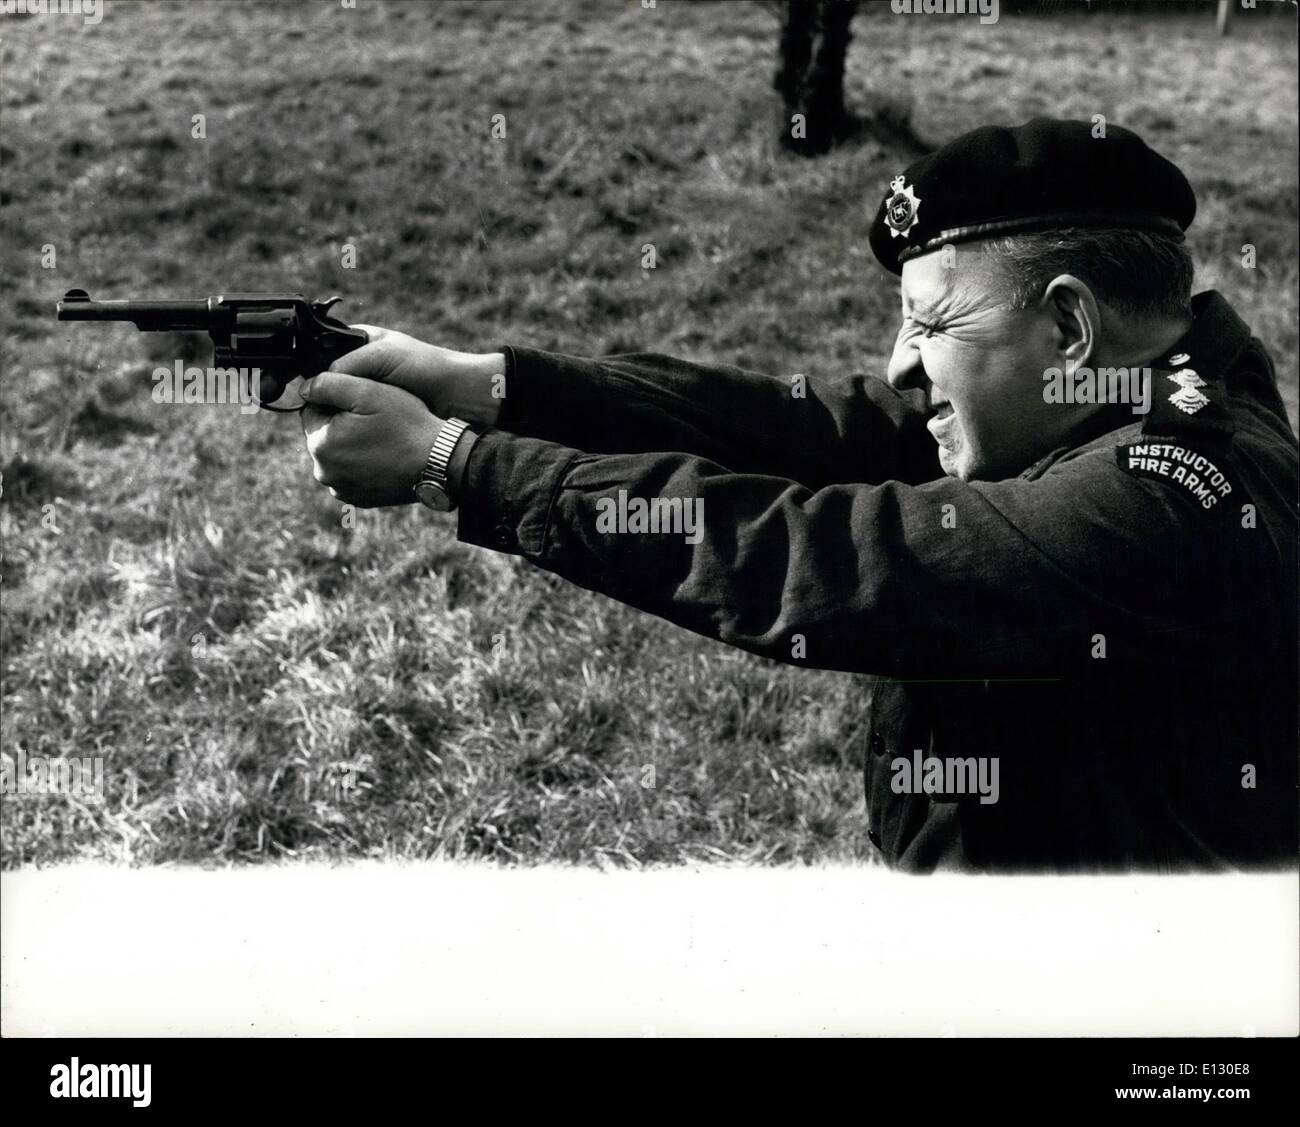 Feb  26, 2012 - Bonnie & Clyde' Style Police :It seems even the